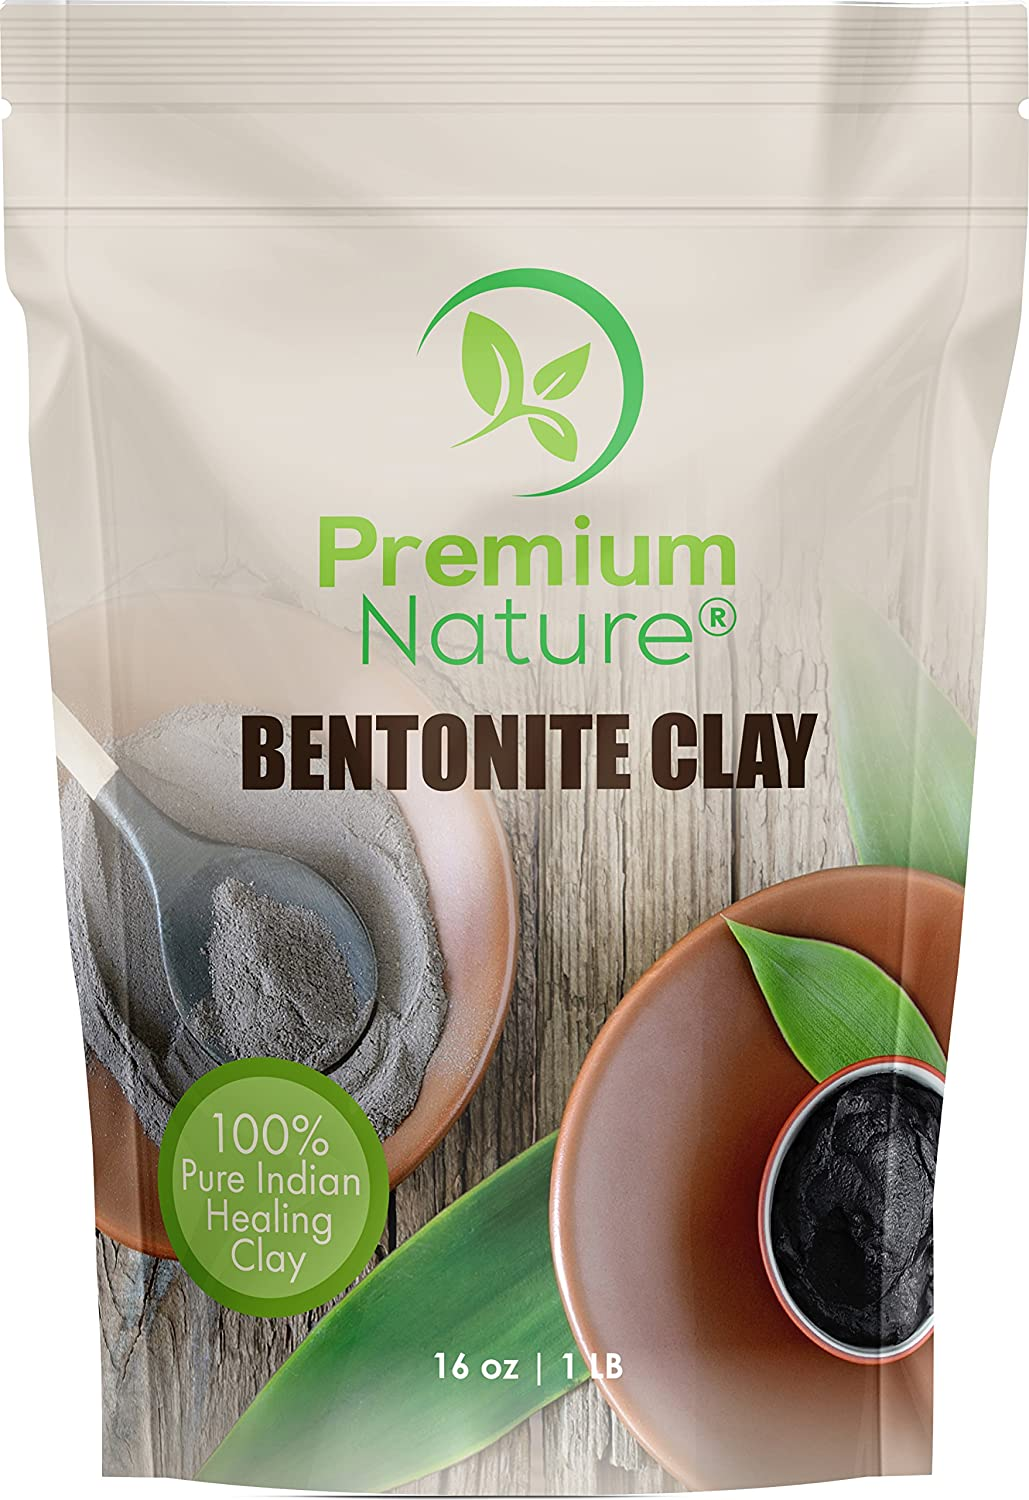 Indian Healing Bentonite Clay Mask - Detoxifying Facial Mask Acne Scar Removal Treatment for Hair & Skin, Face Care Masks Natural Deep Cleansing, Pore Minimizer Detox Clay Cleanser Powder 16 oz Premium Nature